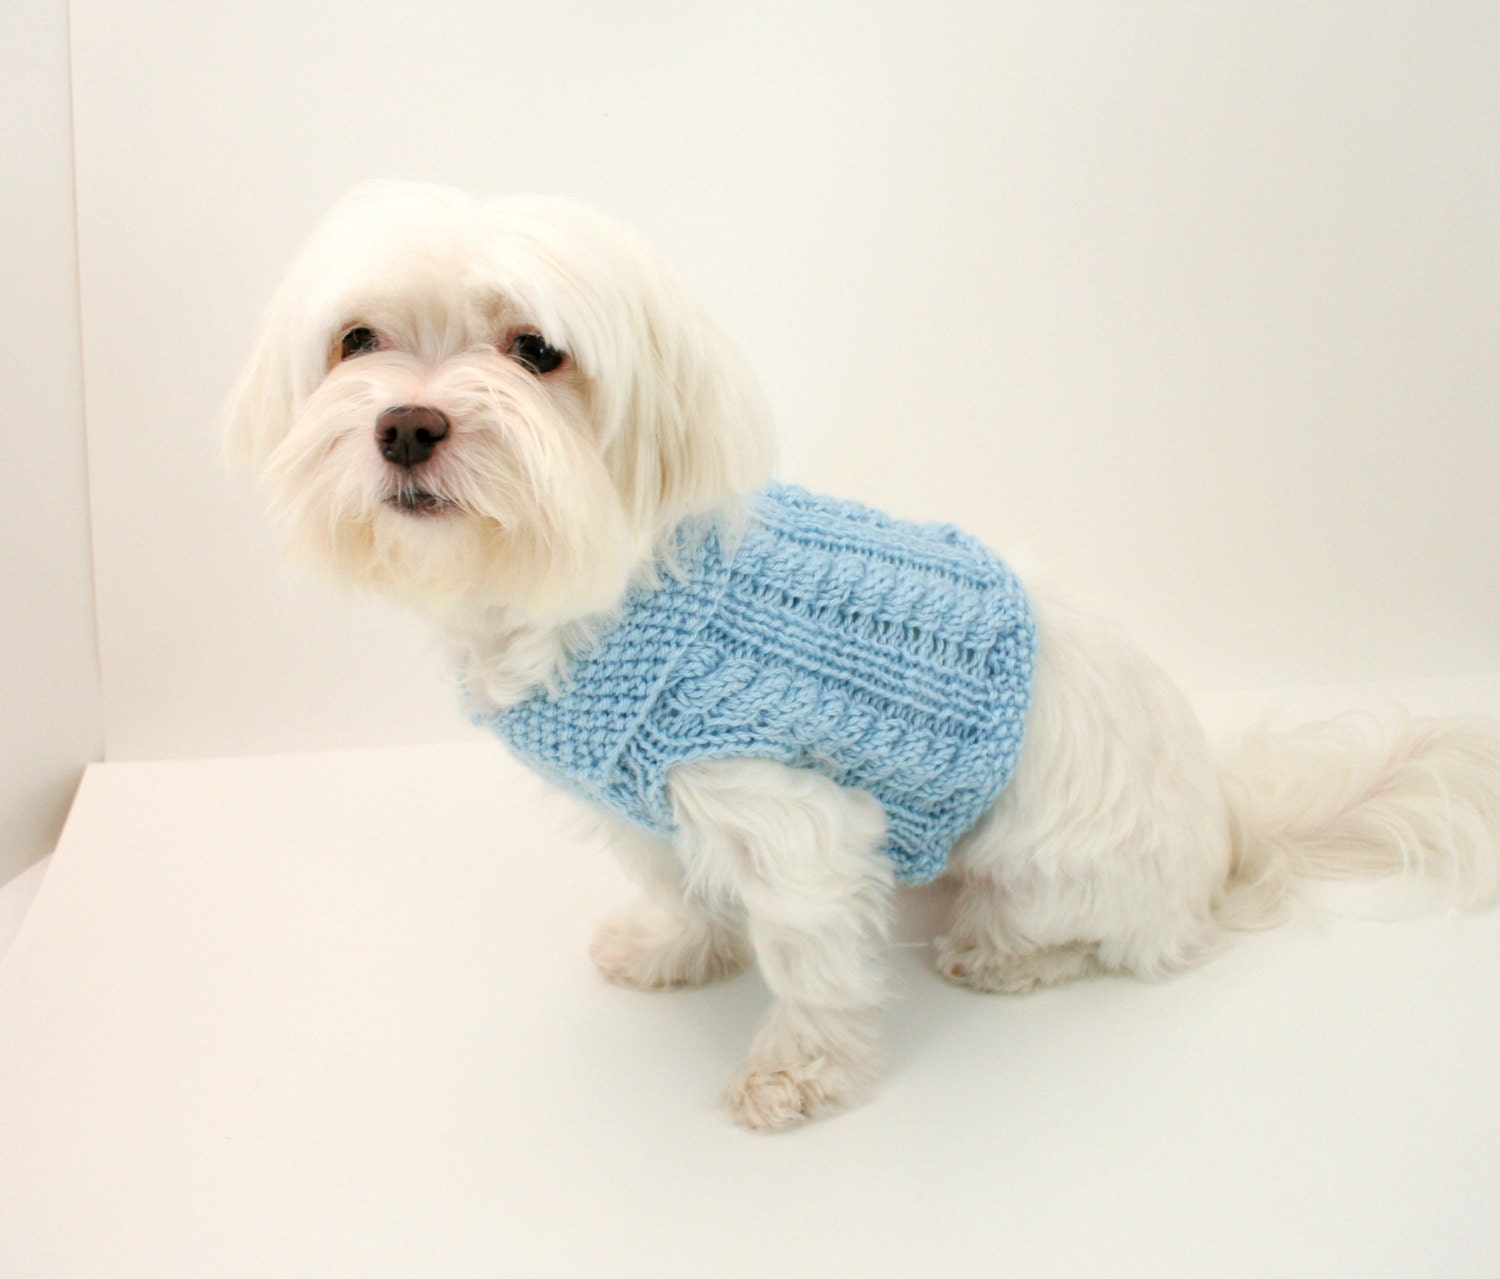 Knitting Pattern For Dog Onesie : DIGITAL PATTERN:Knit Dog Clothes PatternKnit Dog Sweater